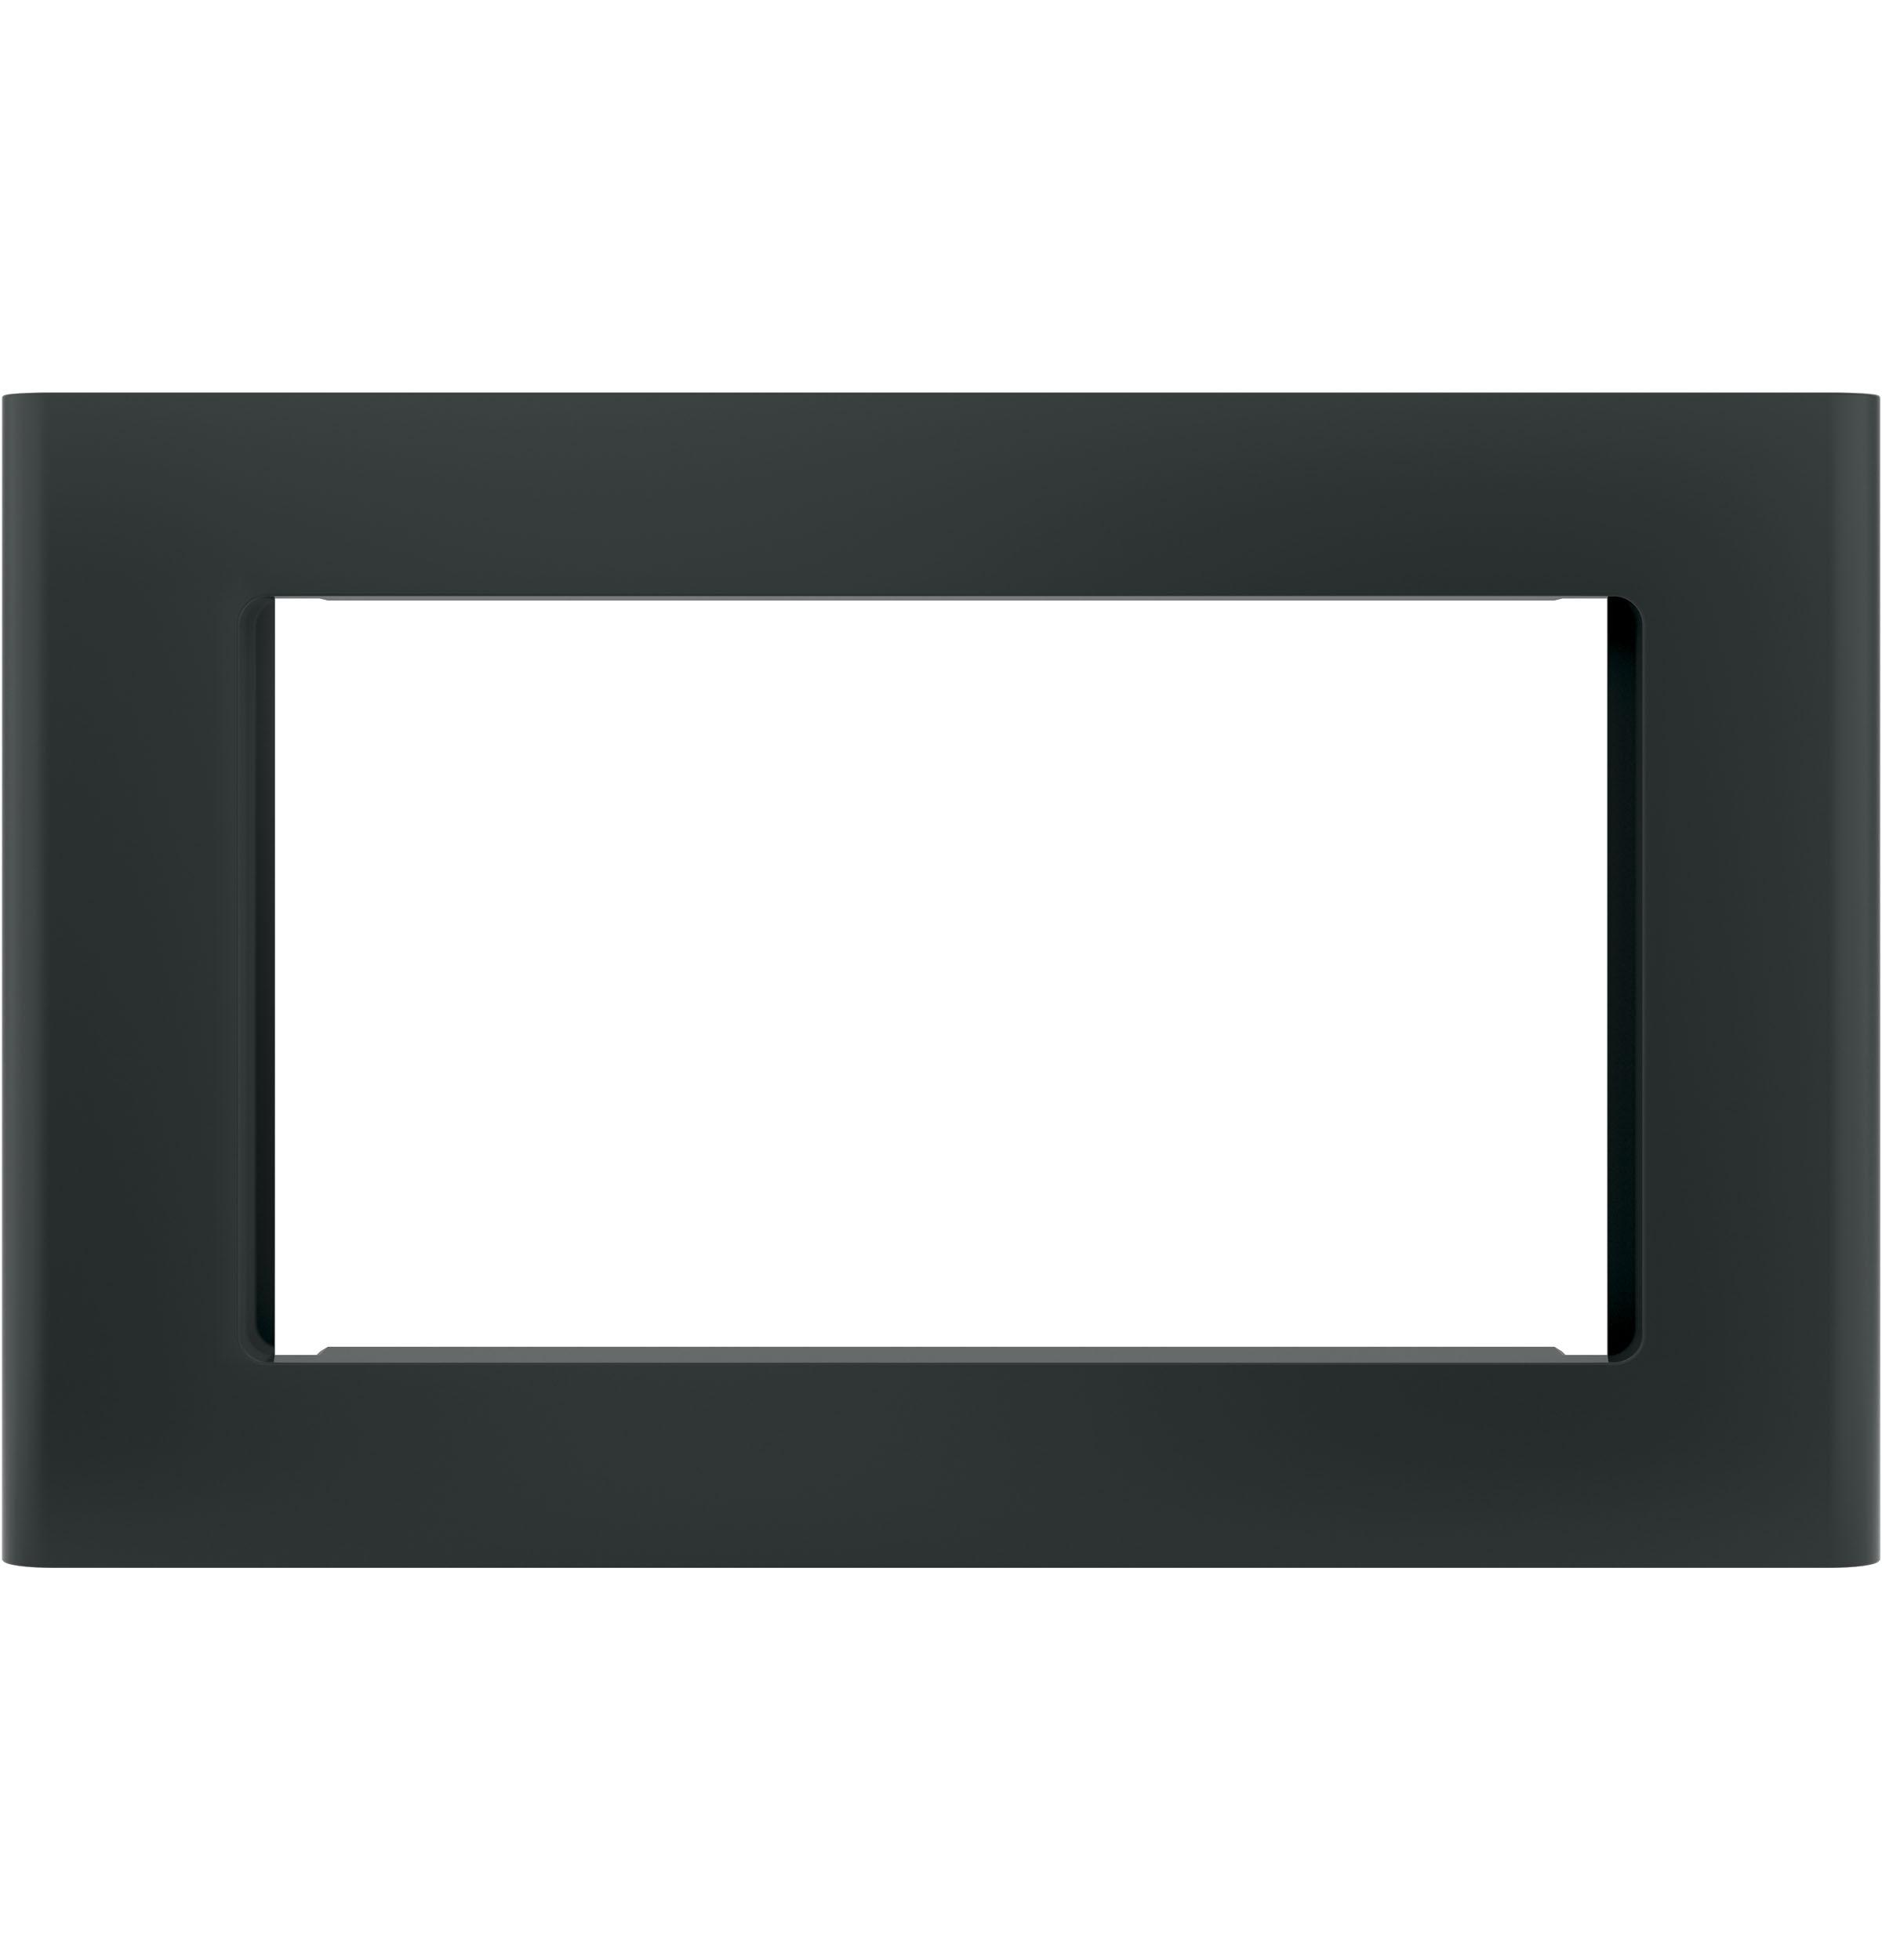 "Microwave Optional 27"" Built-In Trim Kit